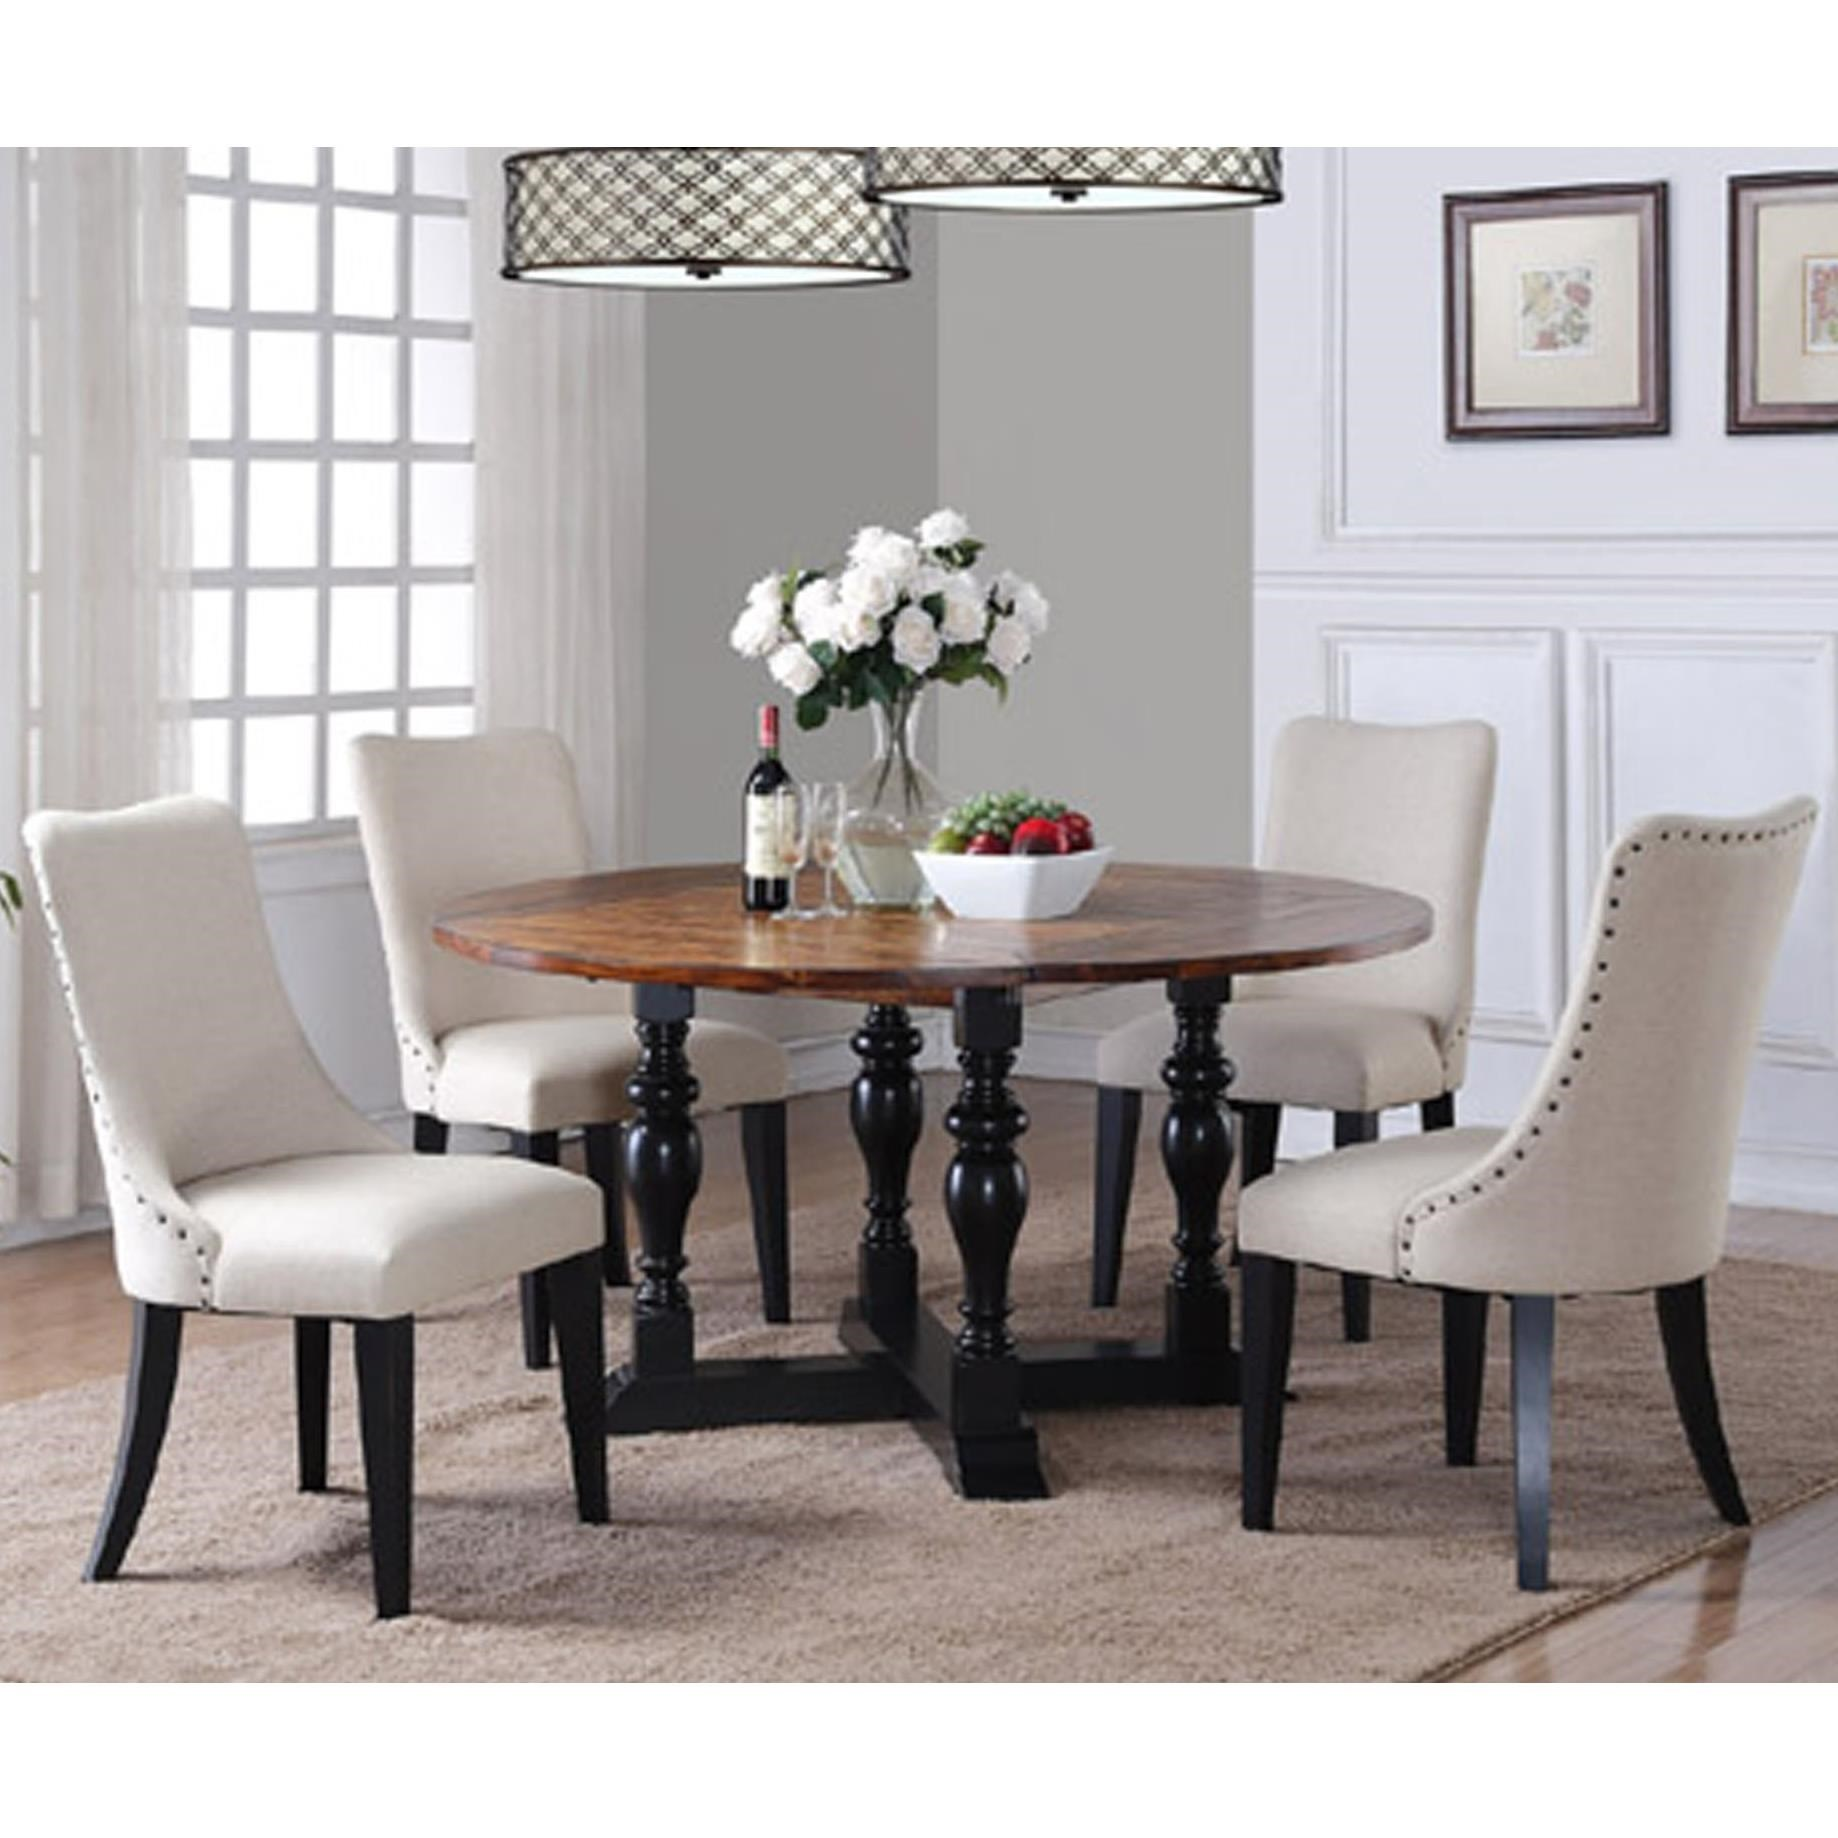 Merveilleux Weston 5 Piece Dining Set With Drop Leaf Table By Winners Only